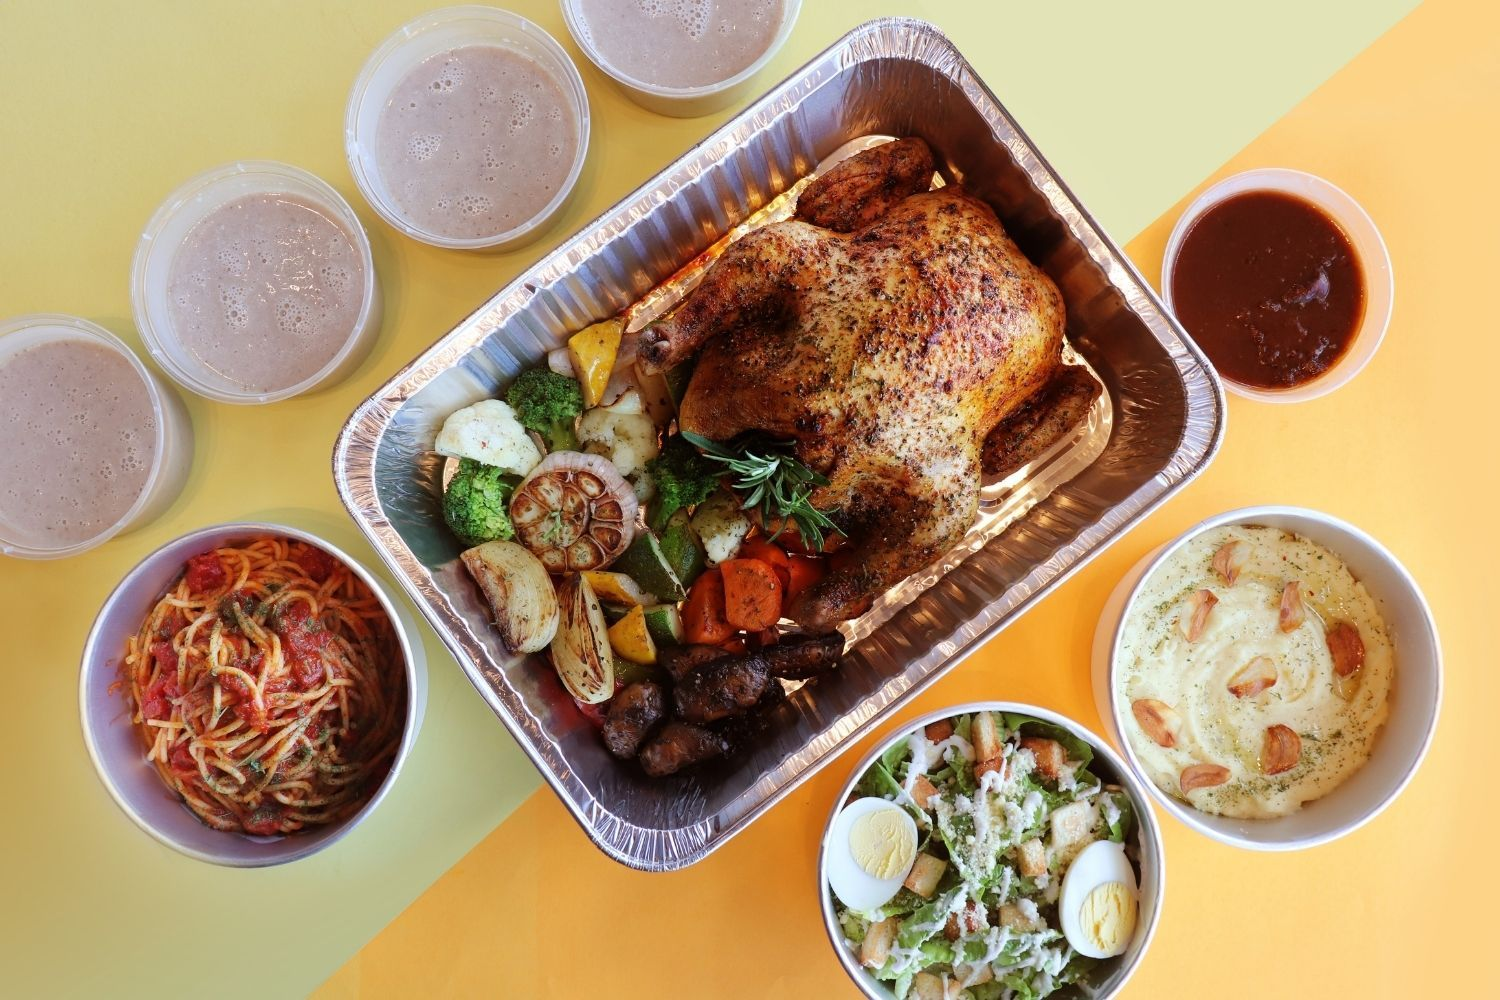 Father's Day 2021: 7 Hotel Food Deliveries For This Weekend